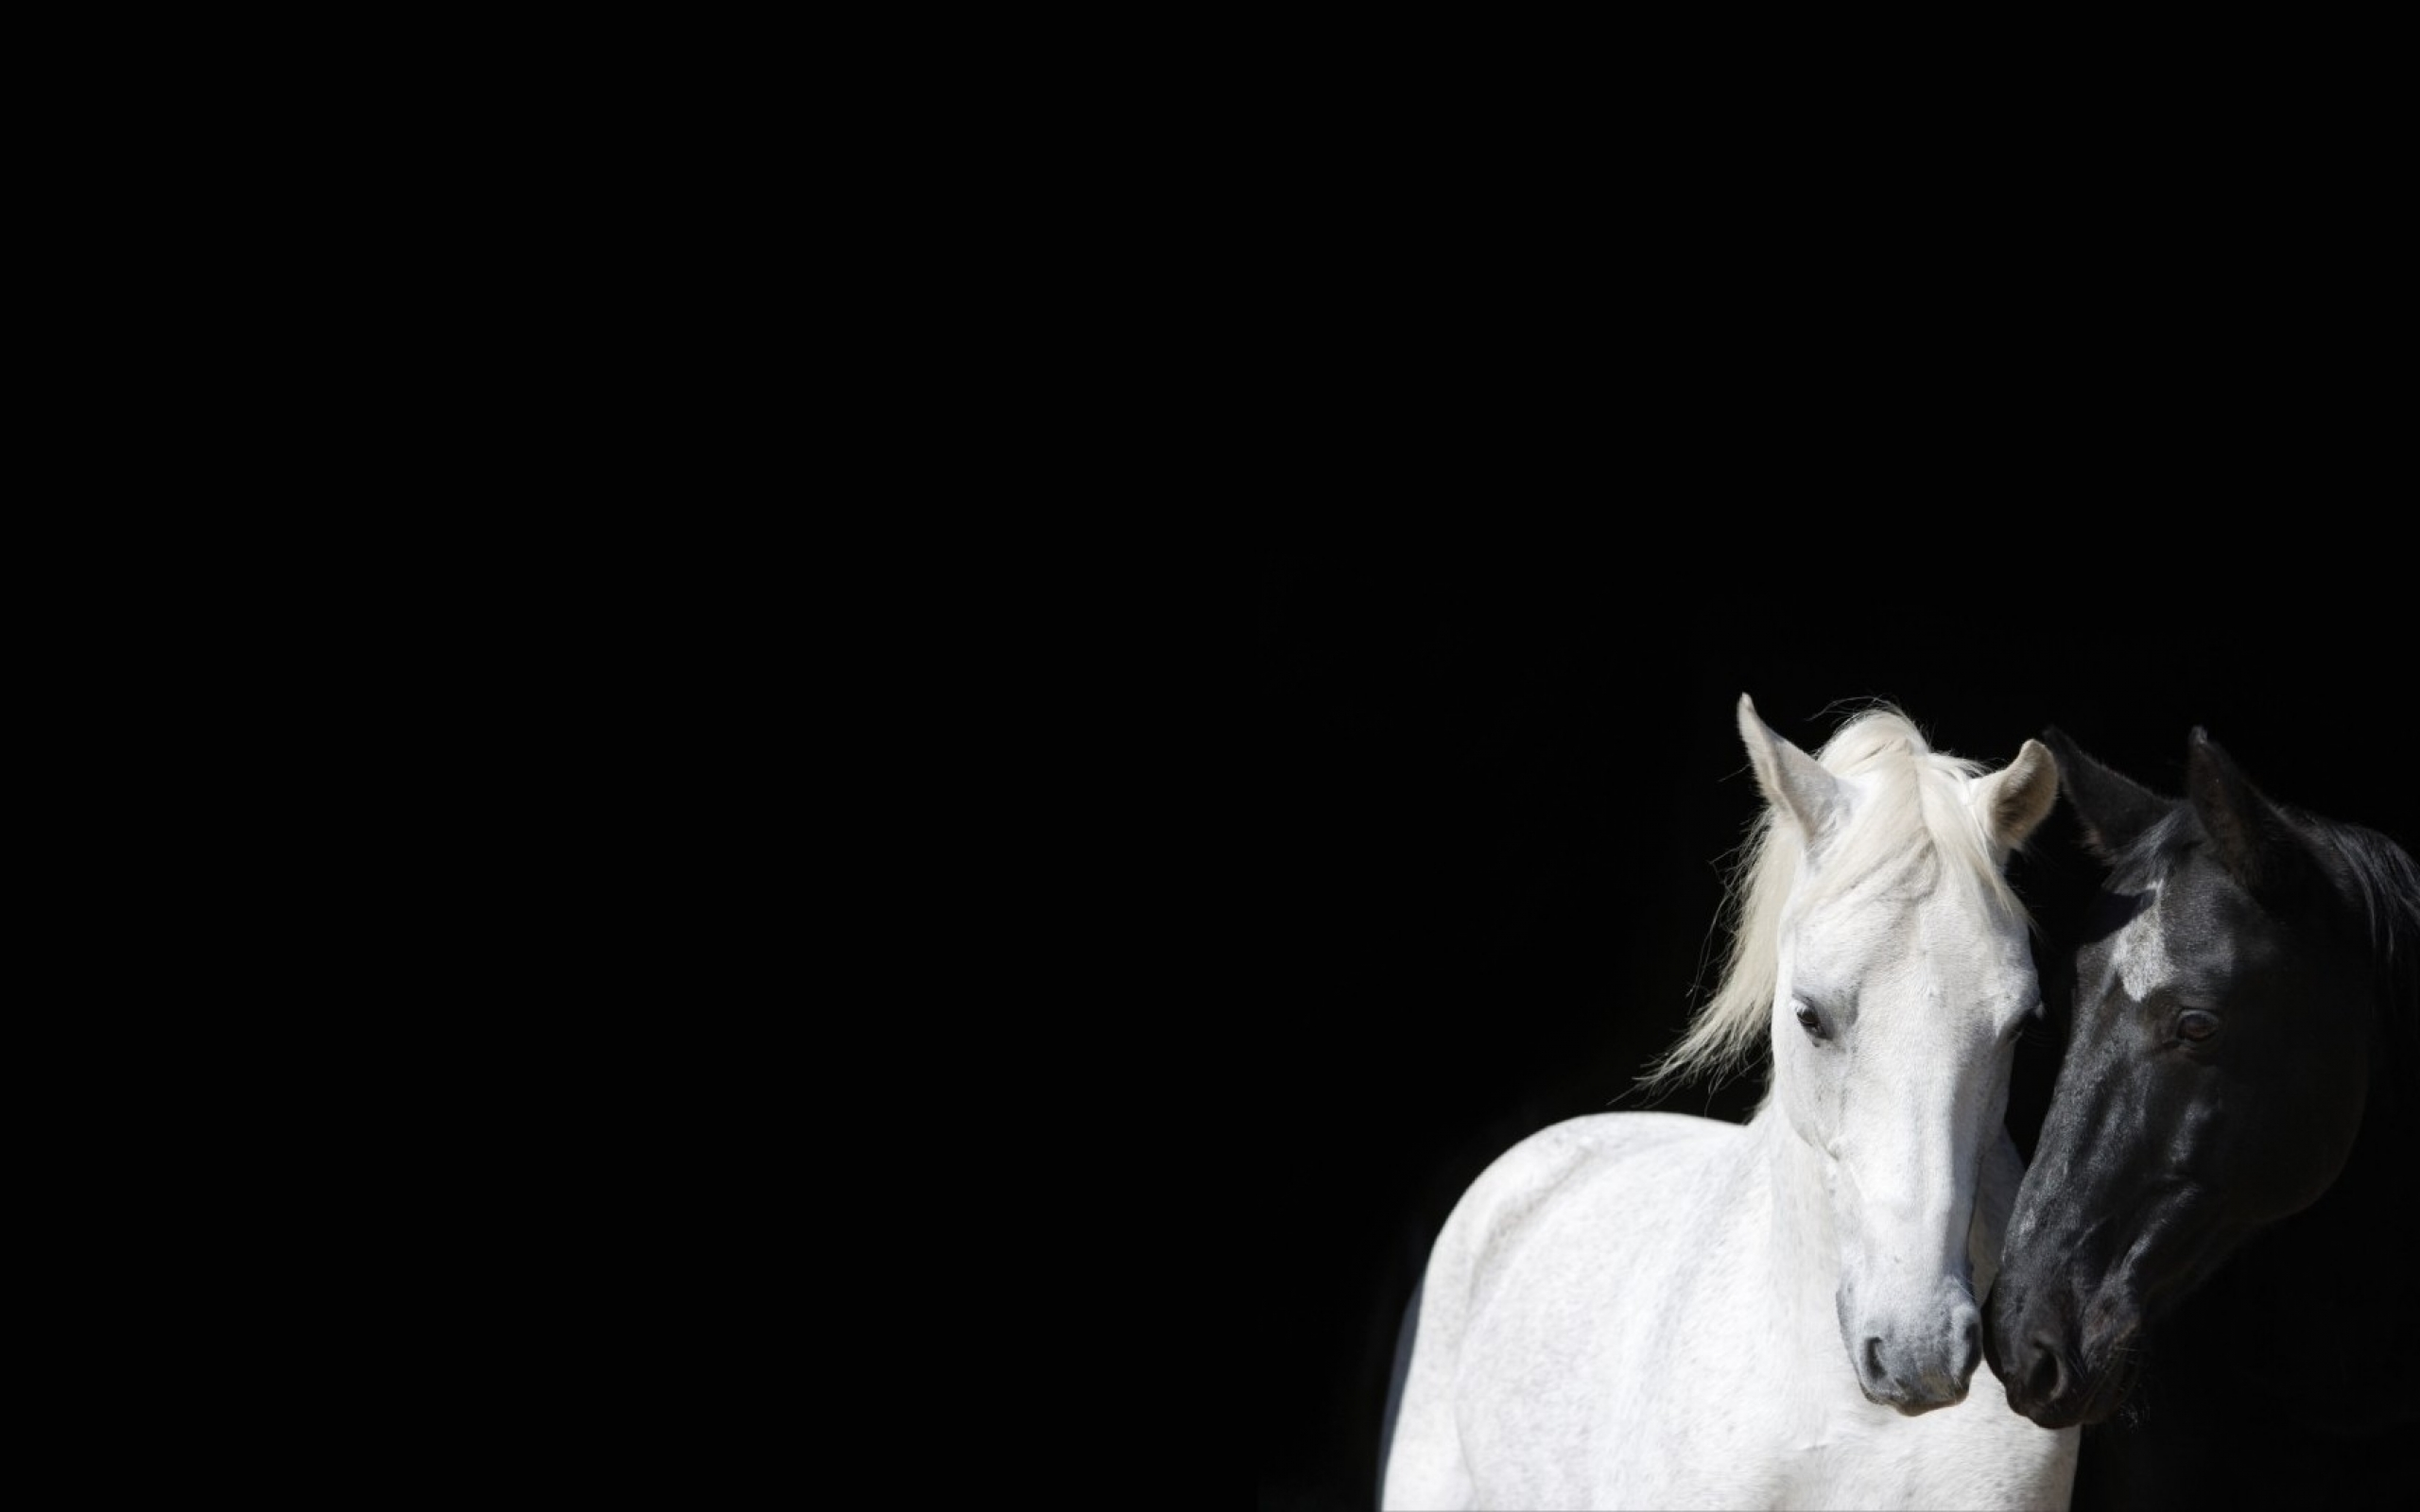 Download Wallpapers Download 2560x1600 black and white animals horses 2560x1600